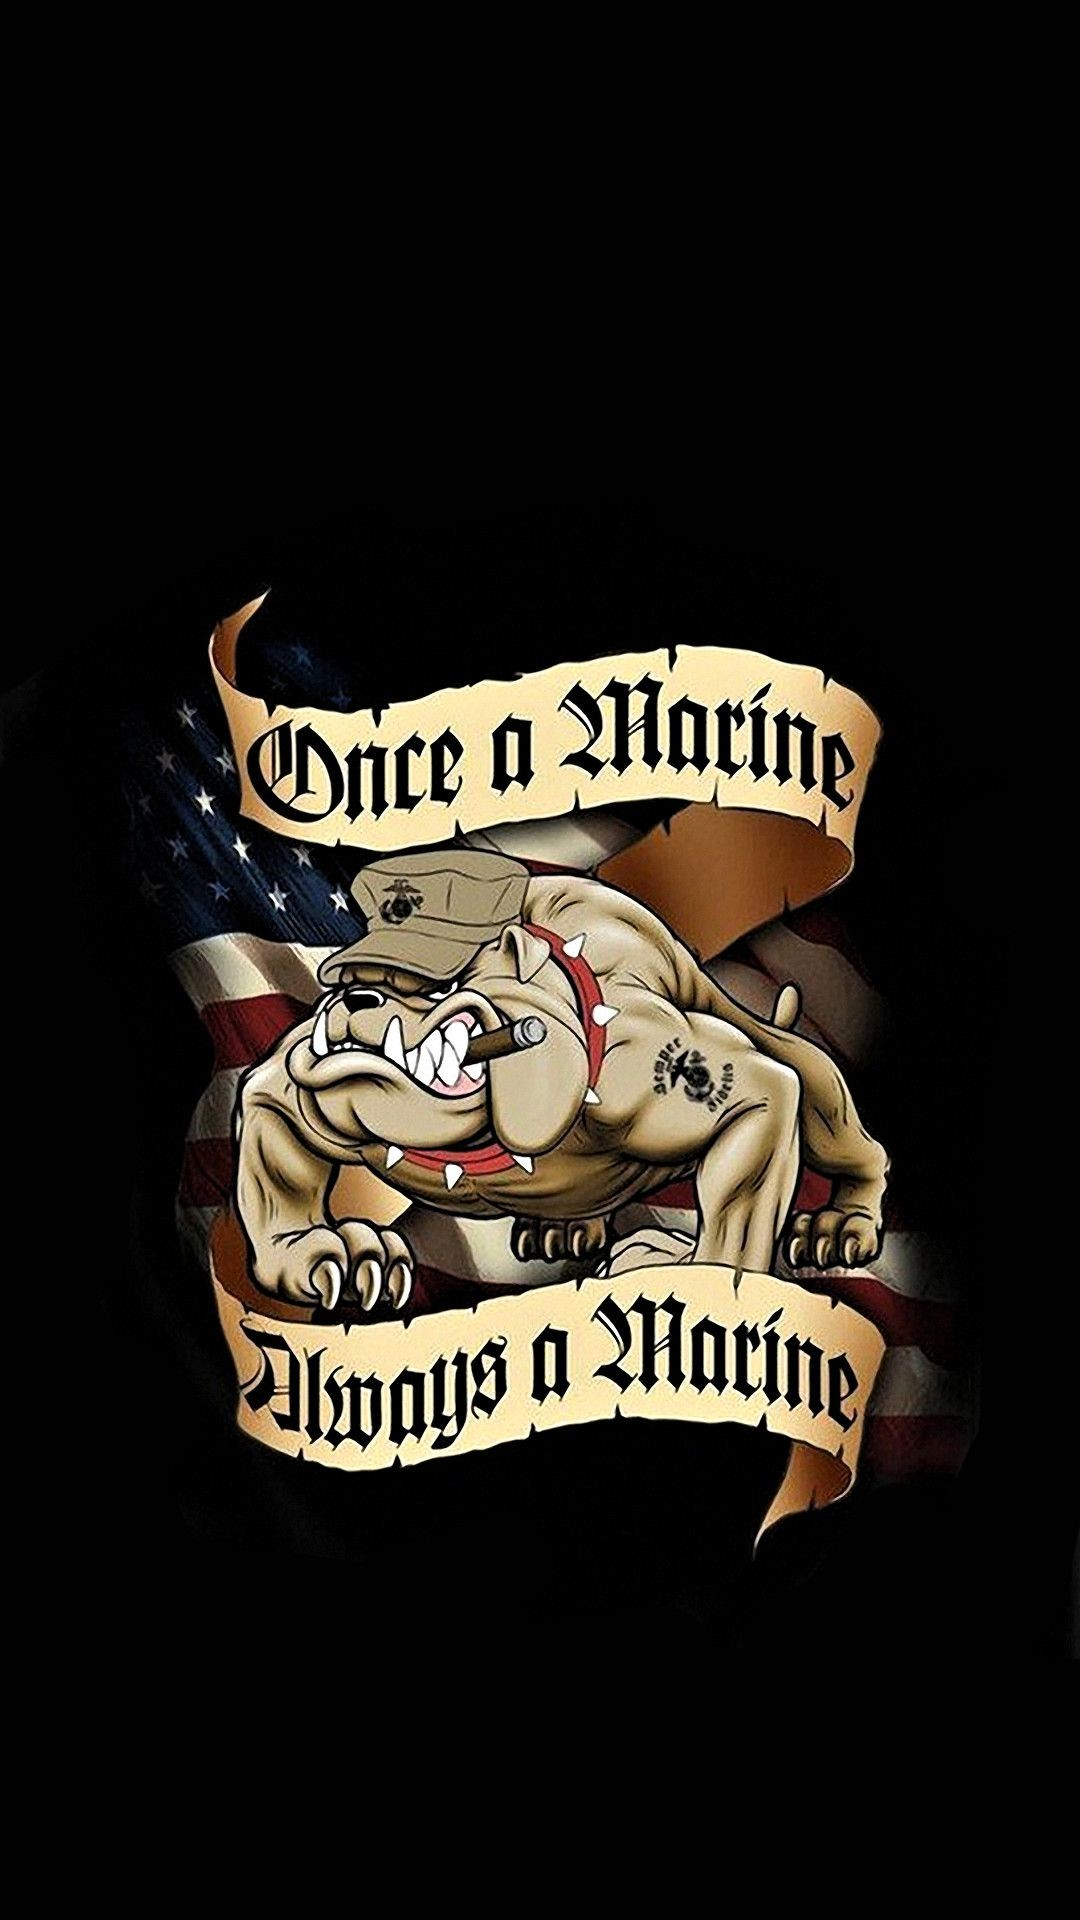 1080x1920  USMC wallpaper? - Android Forums at AndroidCentral.com